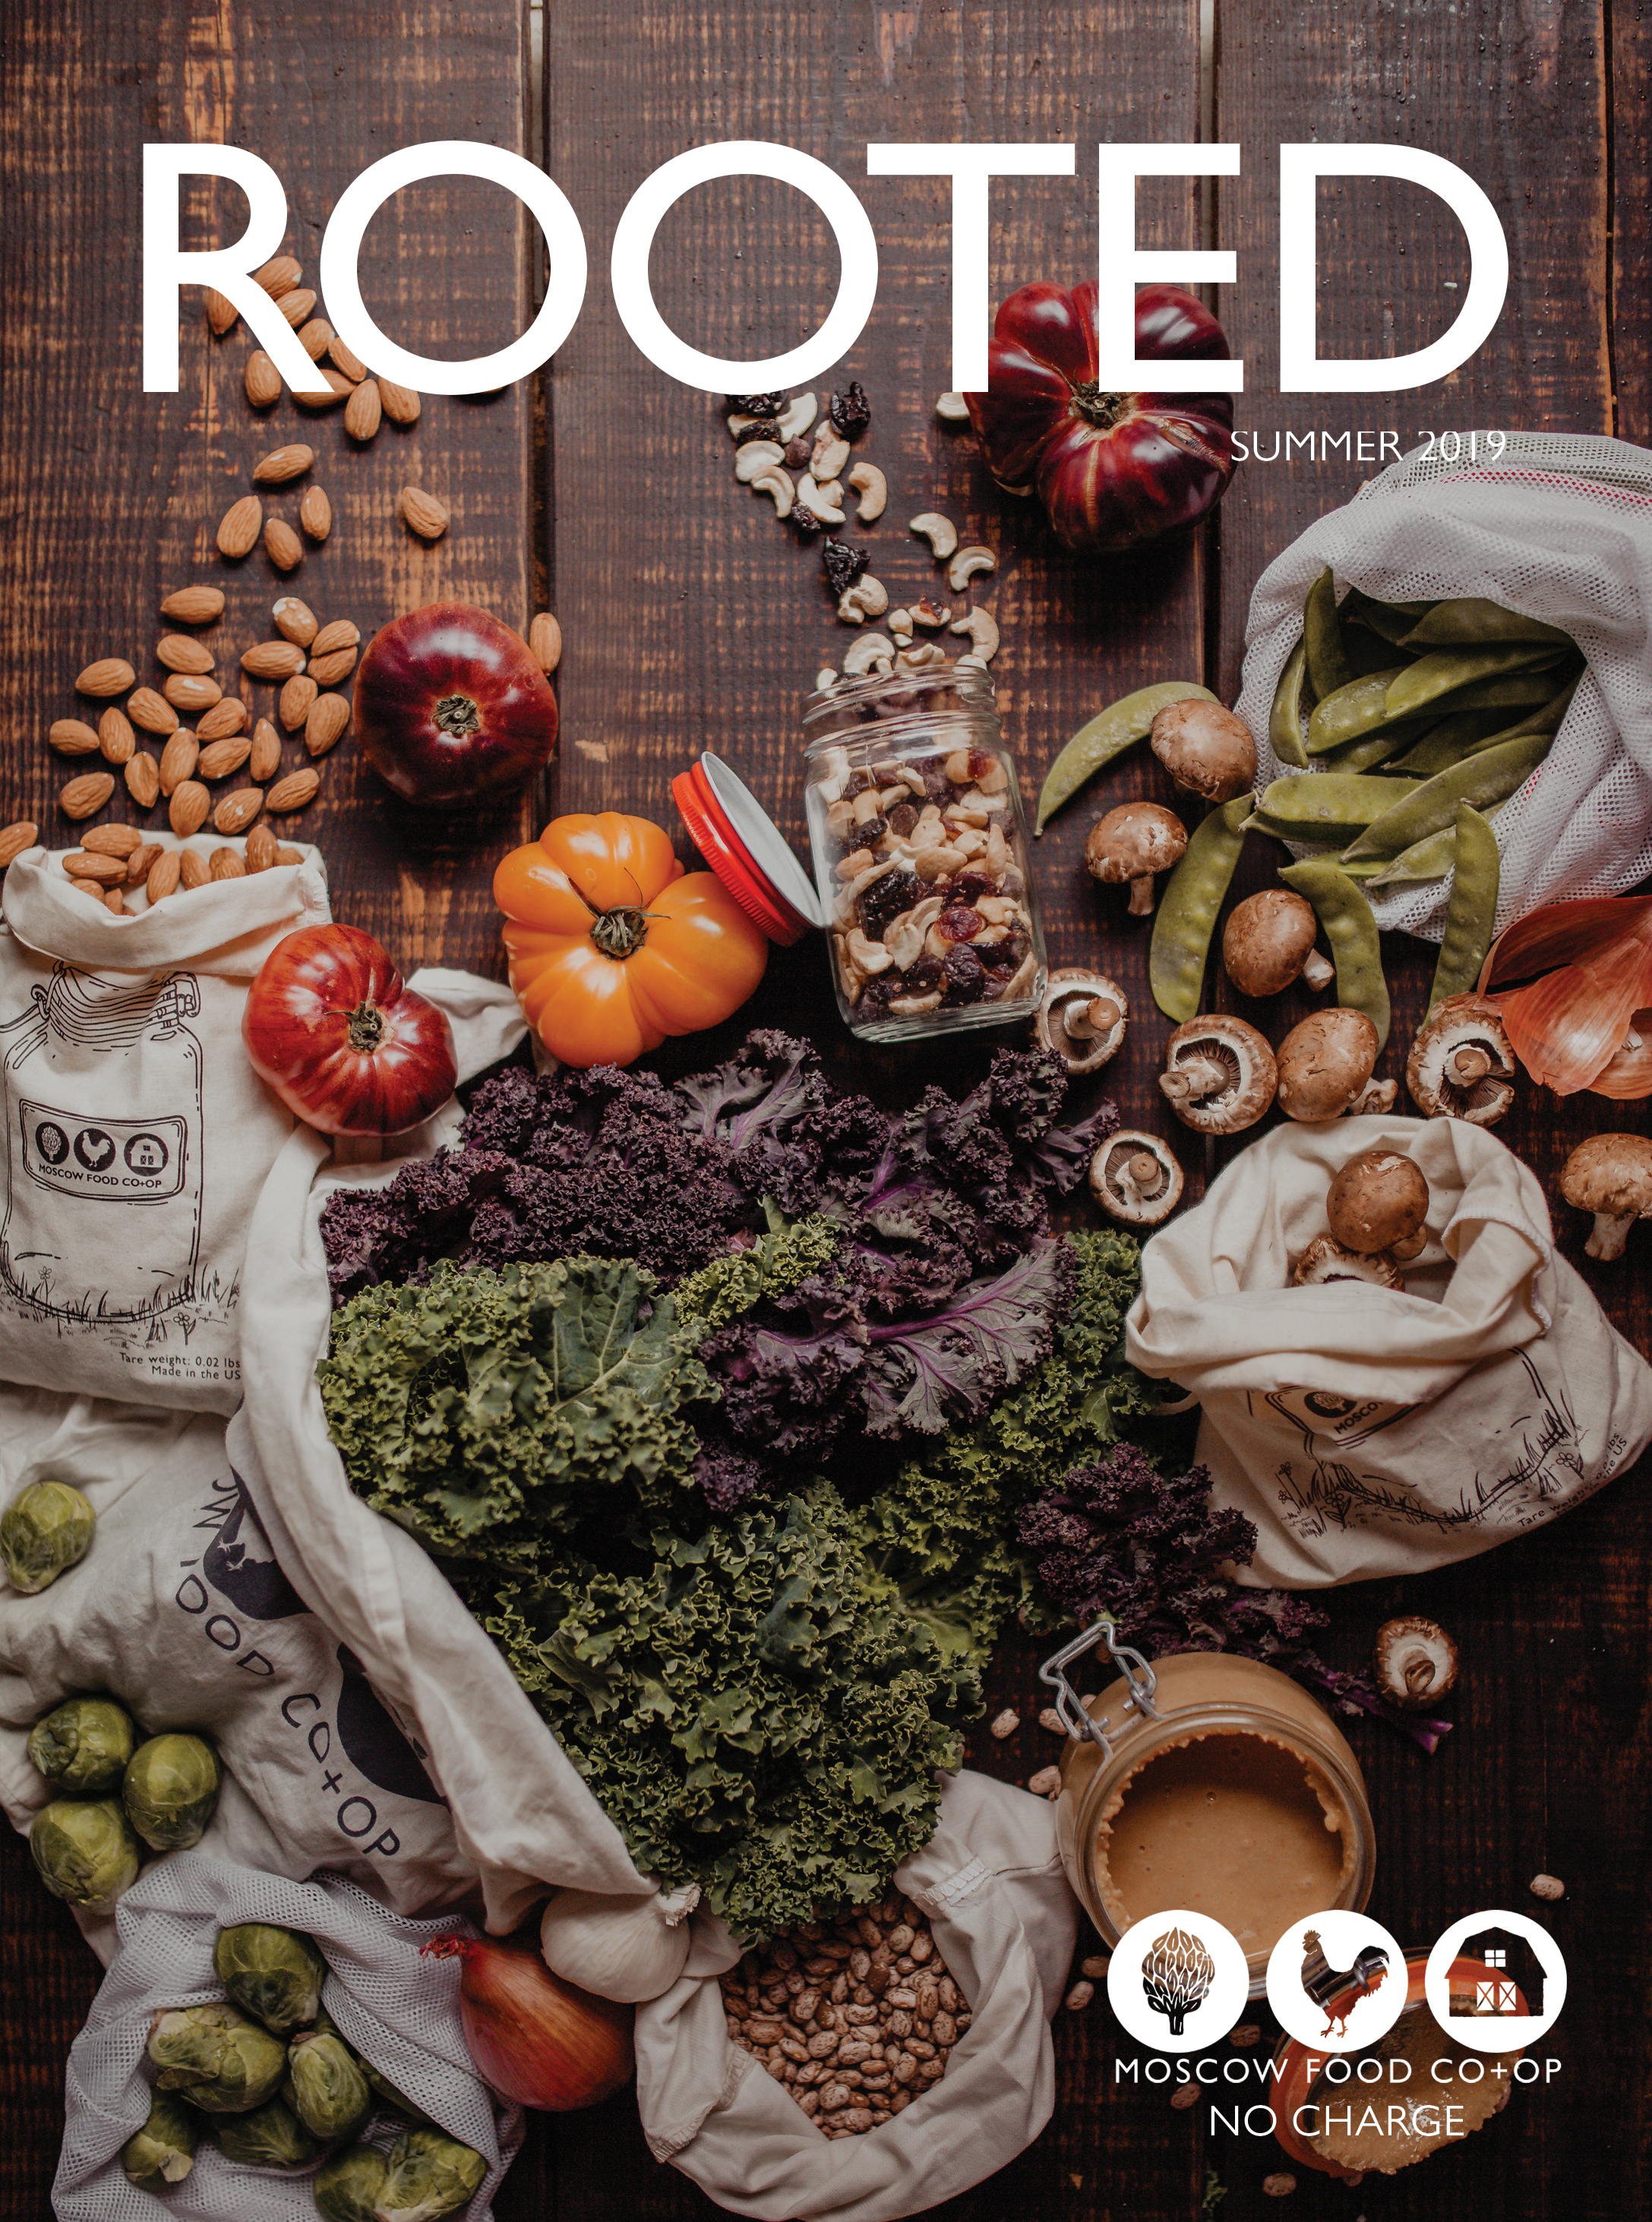 Rooted Summer 2019 - eNewsletter Cover RGB.jpg